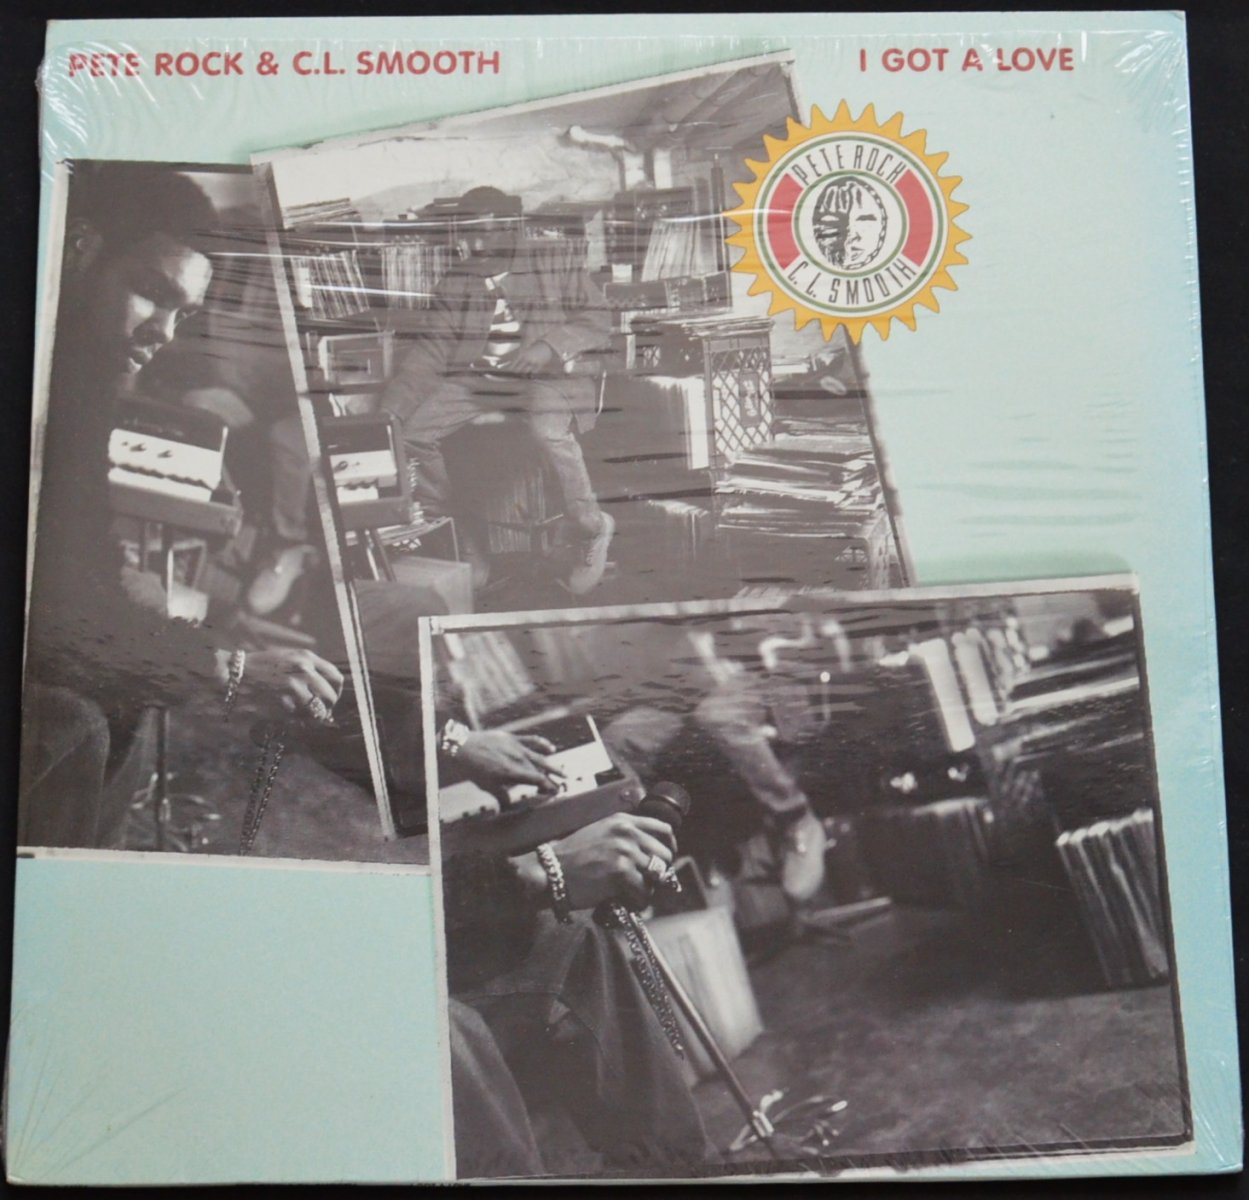 PETE ROCK & C.L. SMOOTH / I GOT A LOVE / THE MAIN INGREDIENT (12